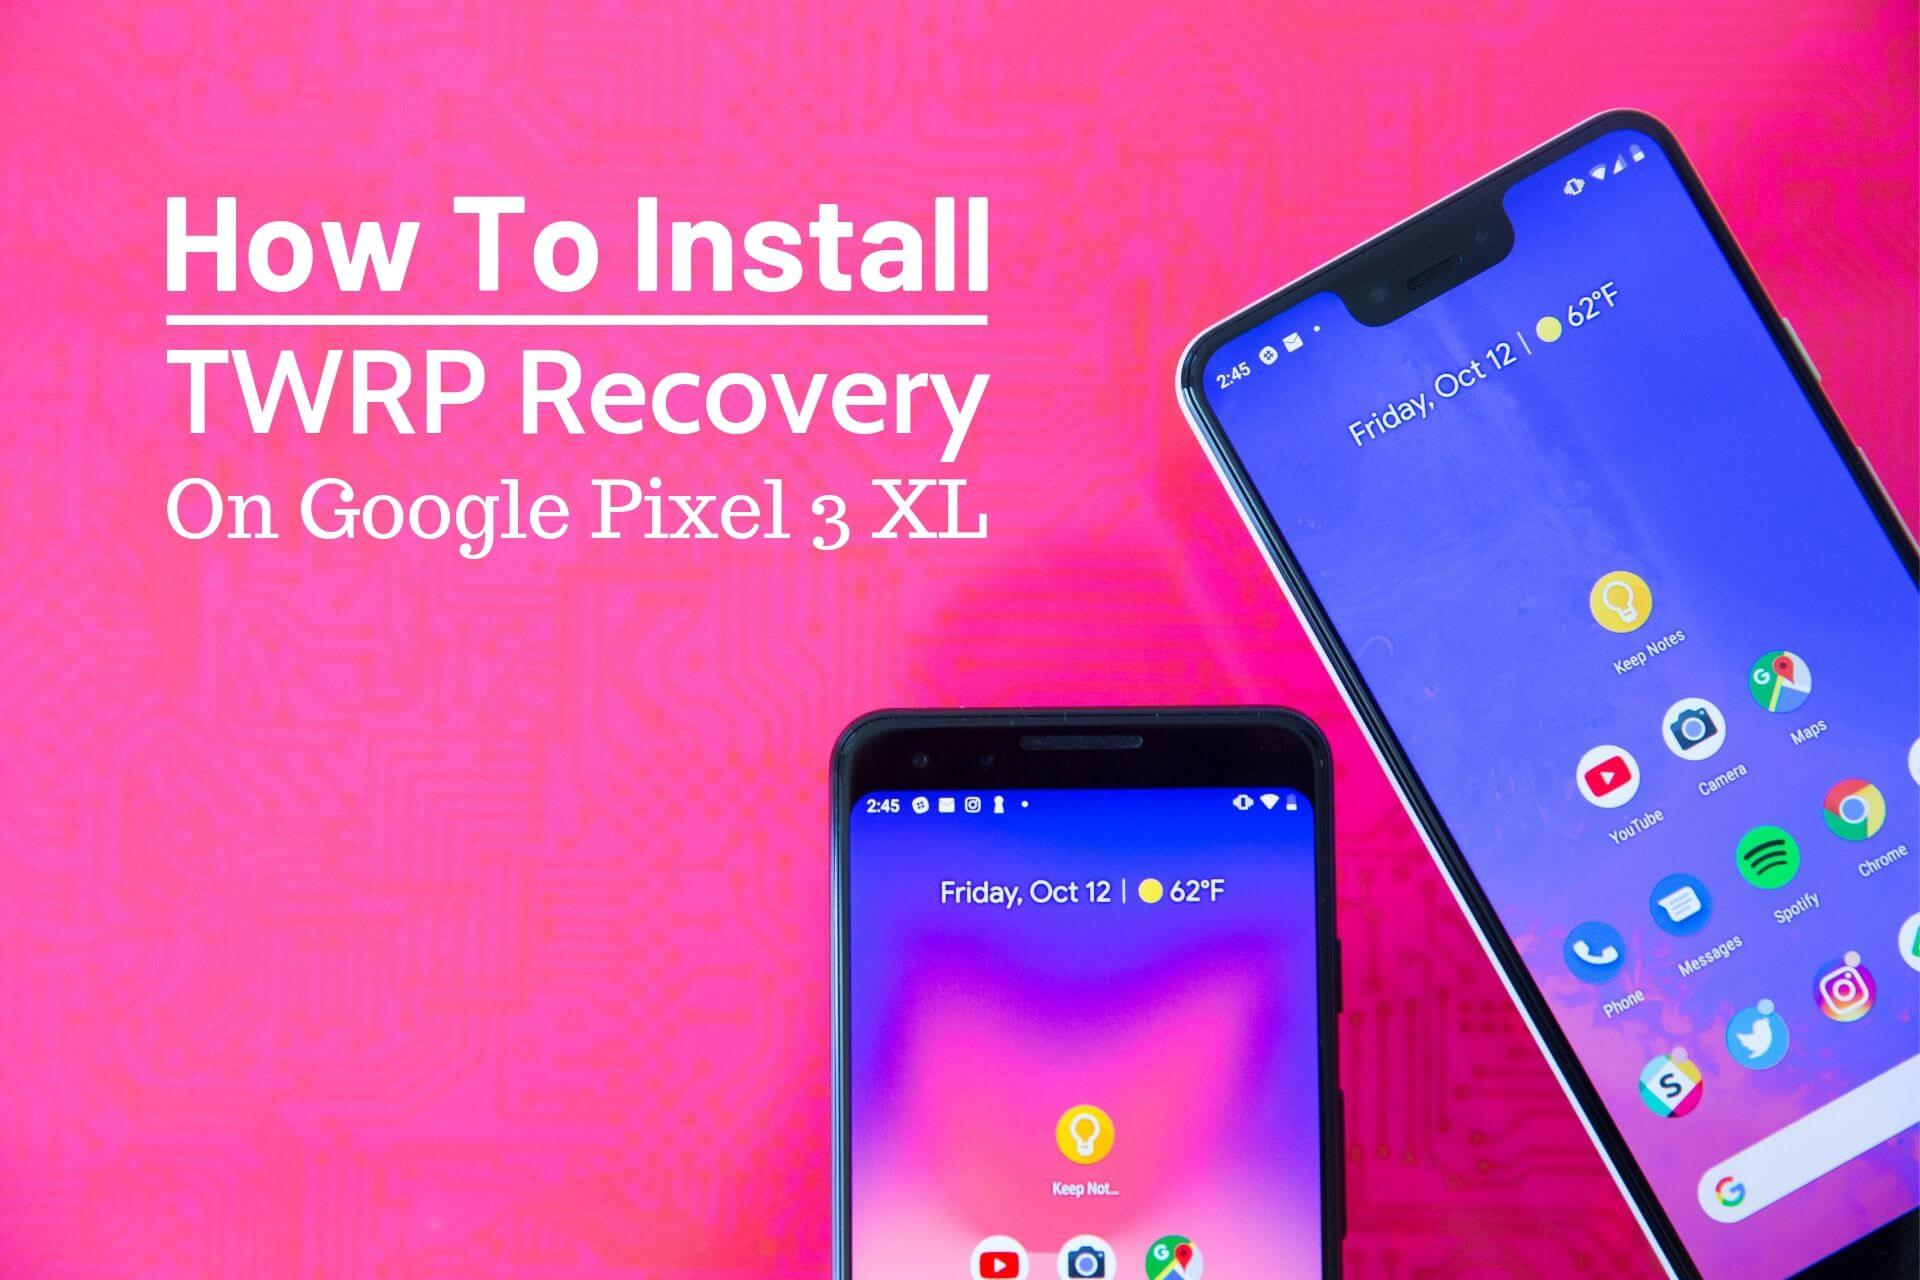 TWRP Custom Recovery on Google Pixel 3